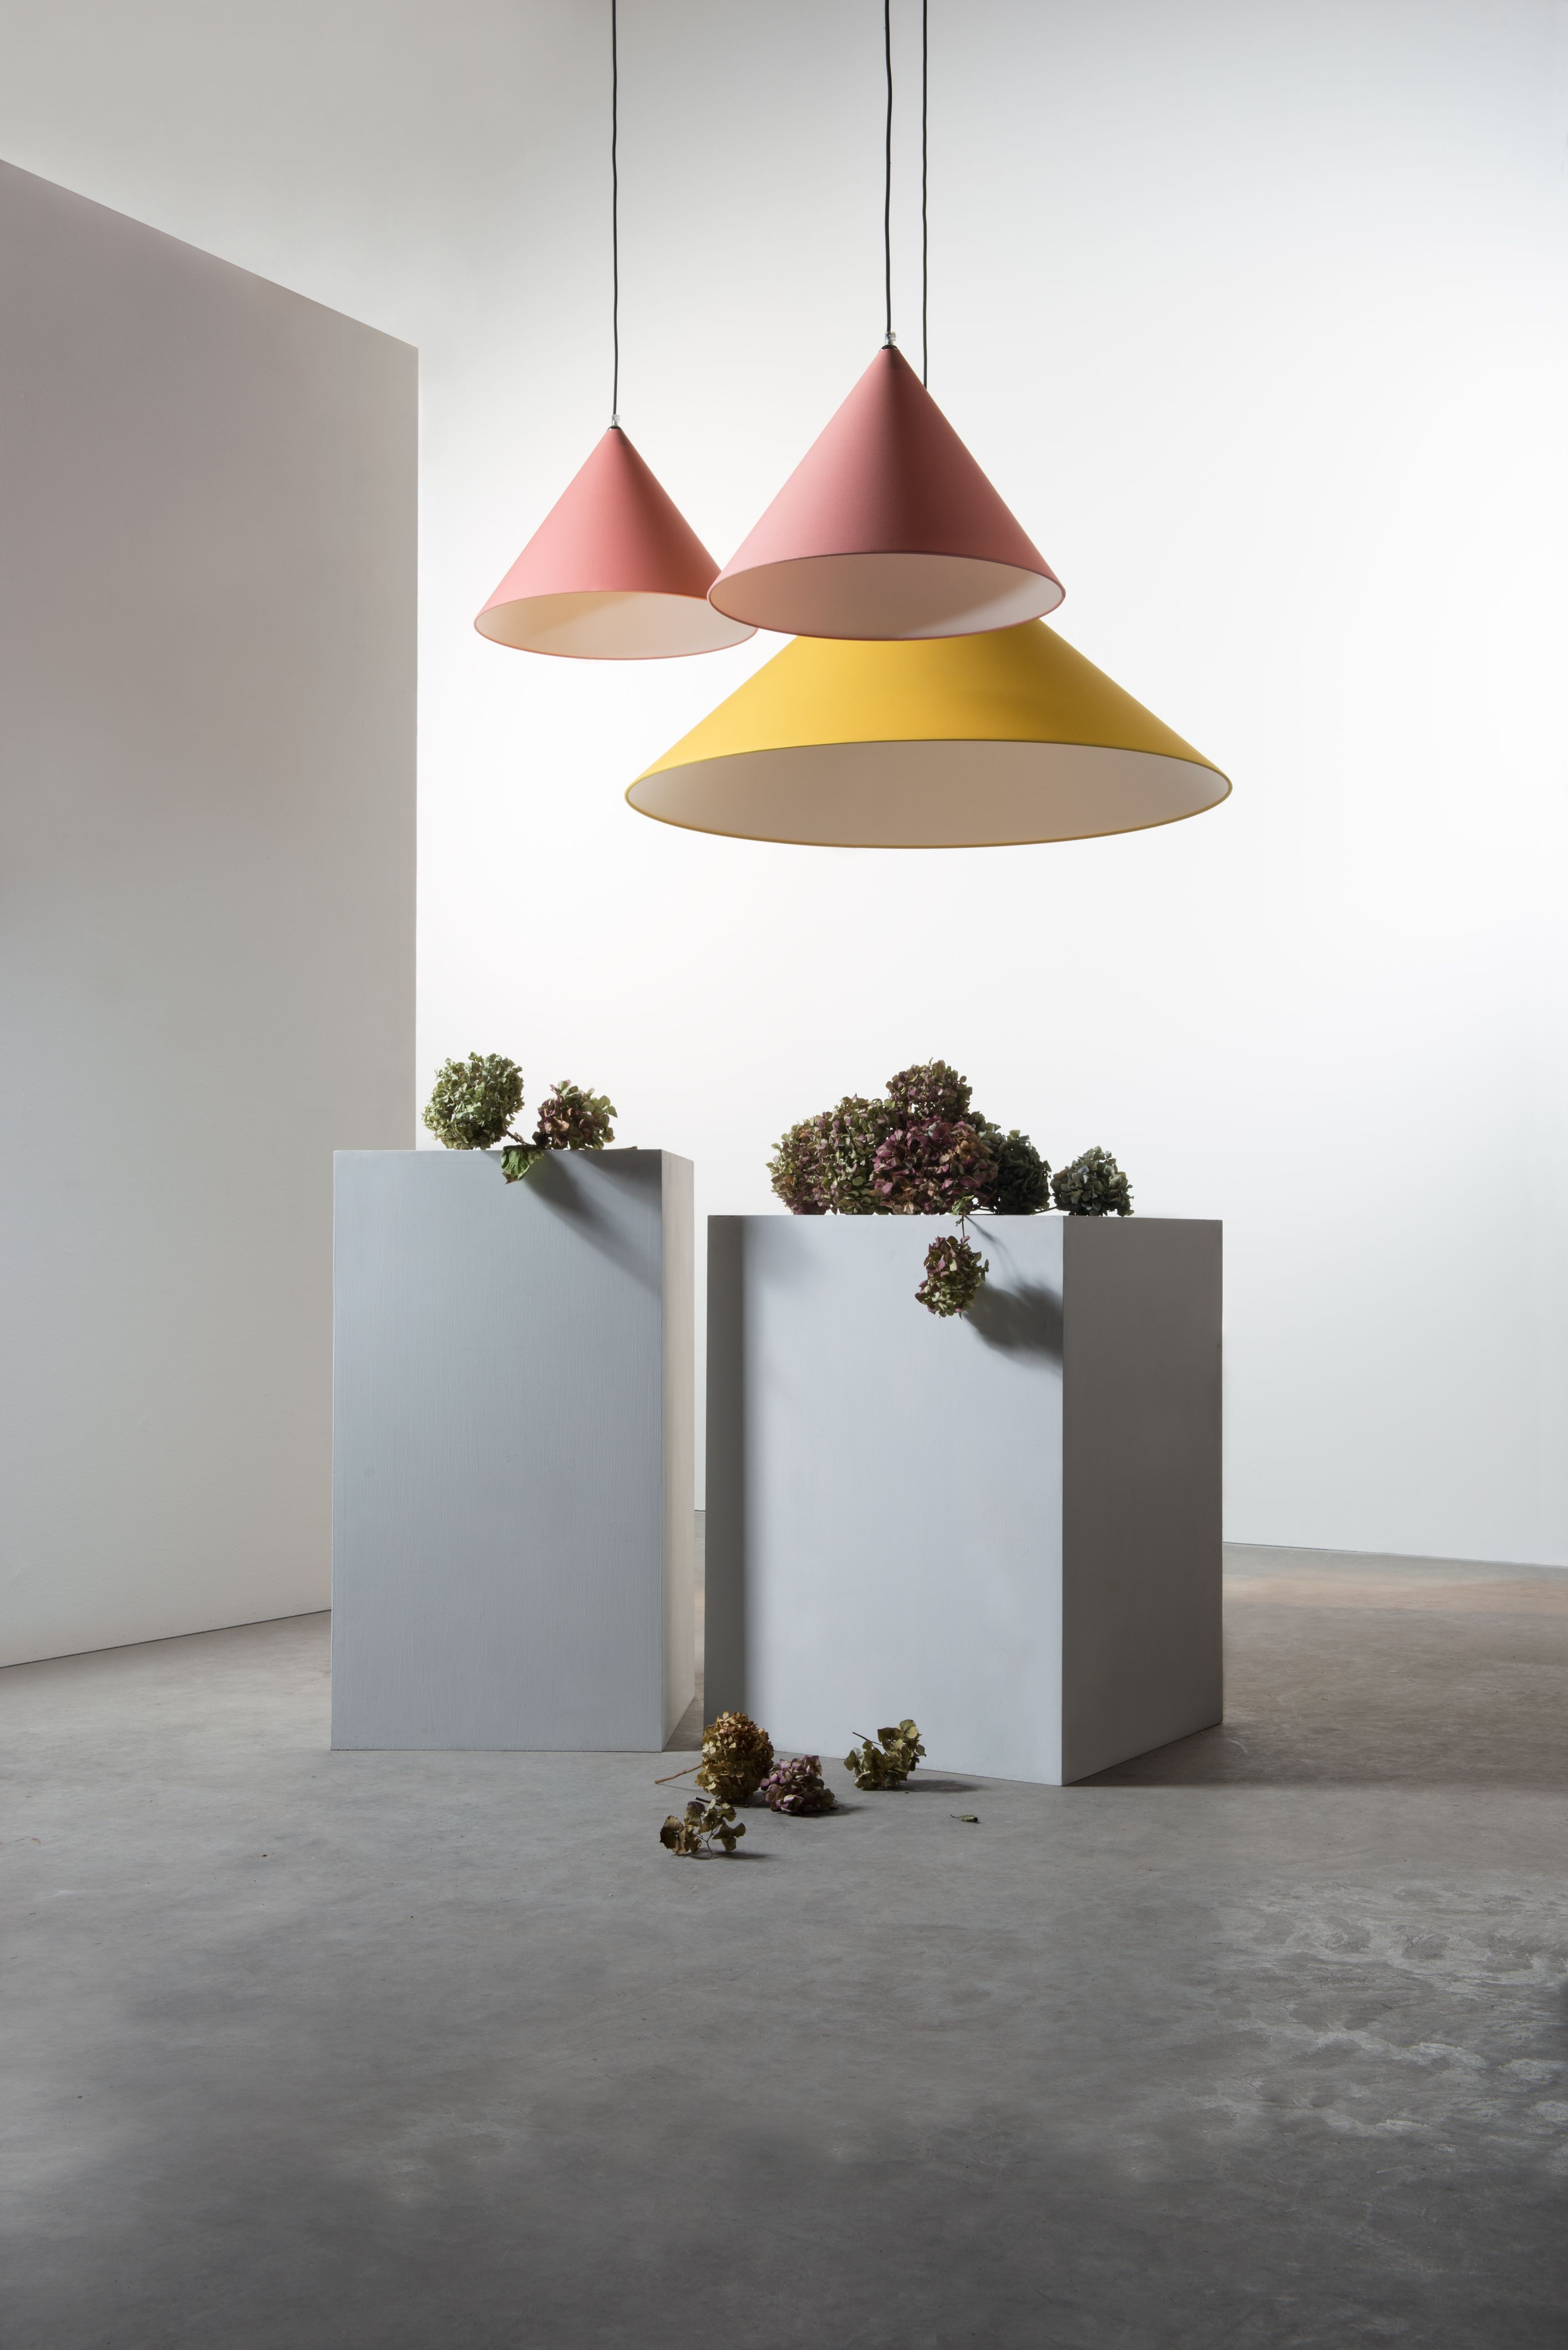 PEAK by AndCosta in 2020 Metal ceiling, Hanging lamp